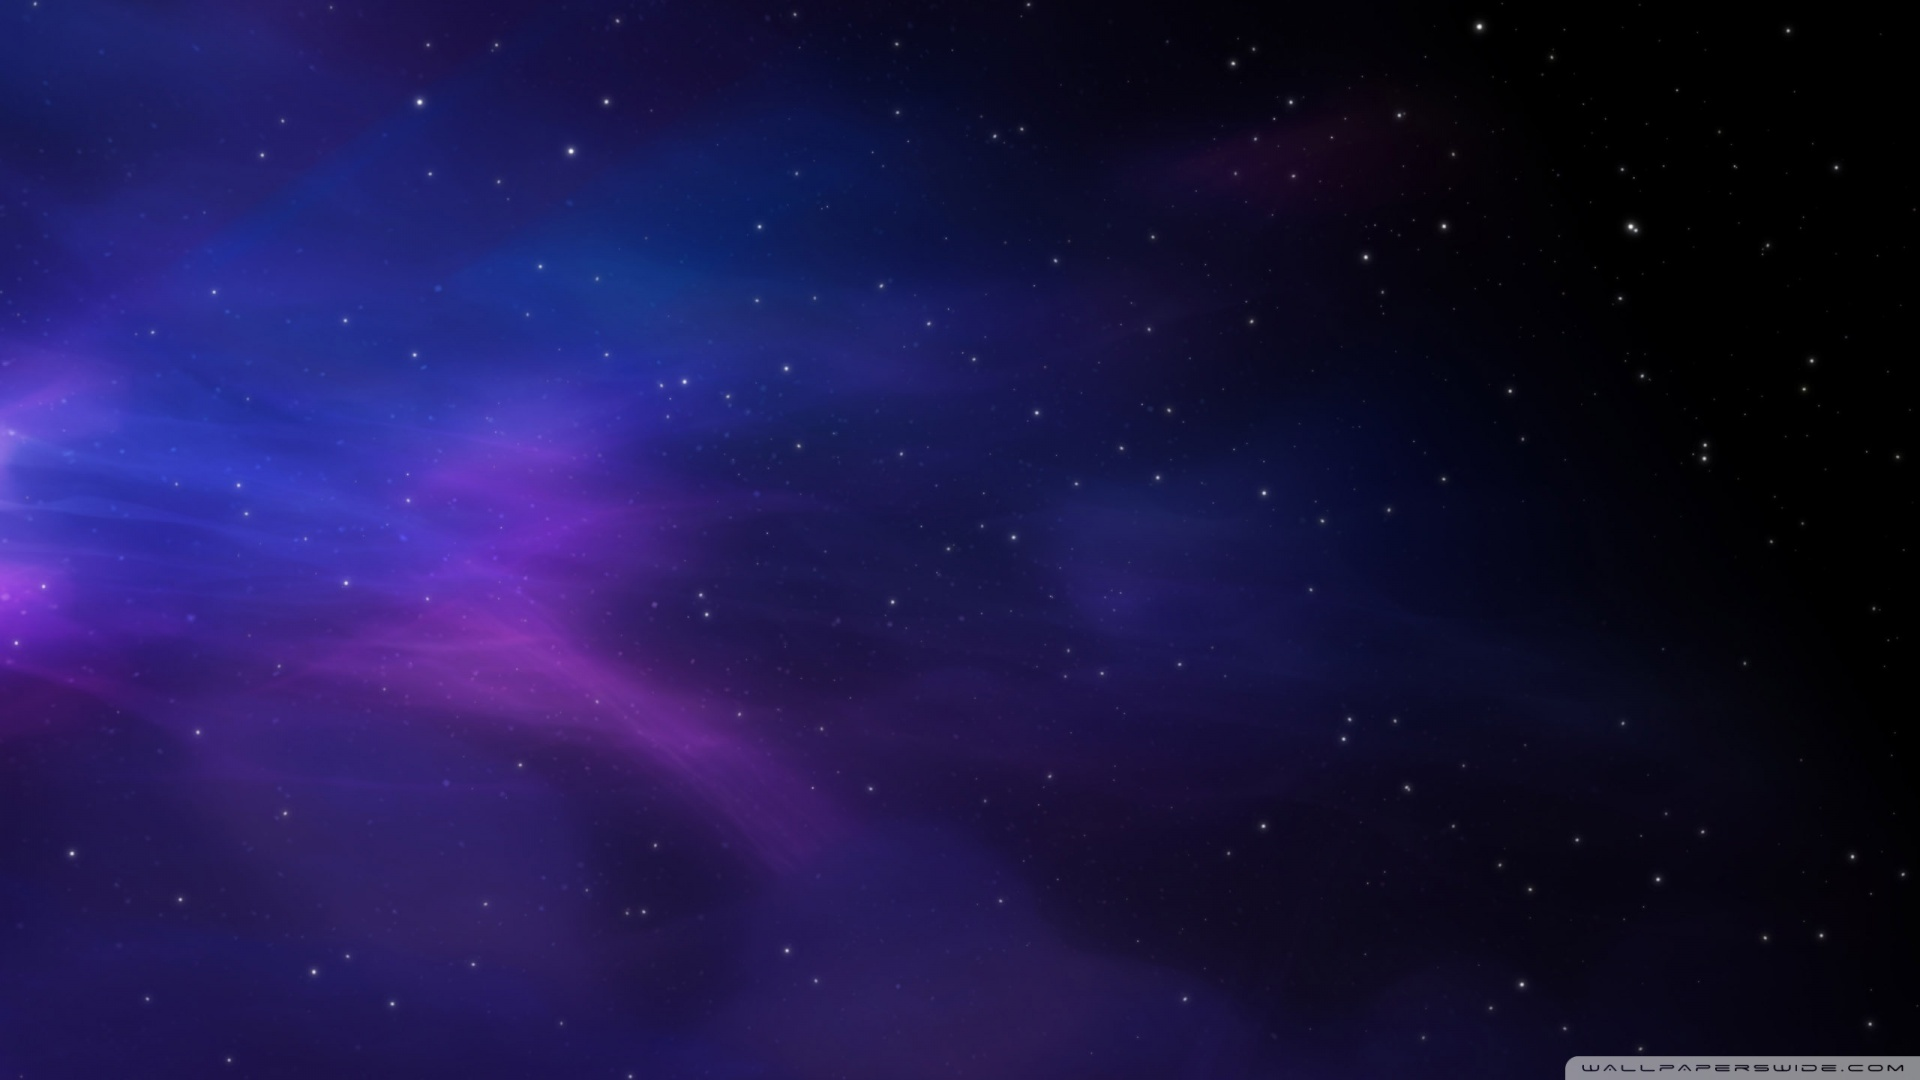 Space Colors Blue Purple Stars Wallpaper 1920x1080 Space Colors Blue 1920x1080